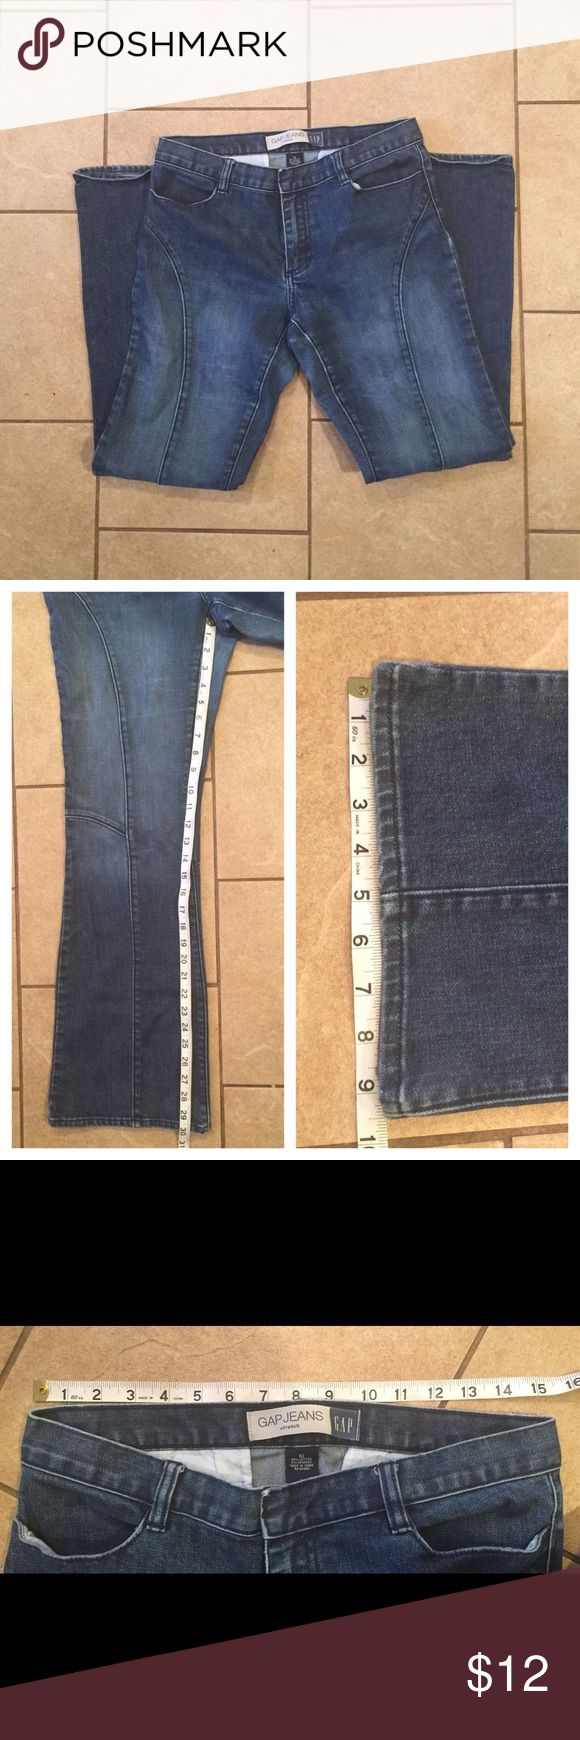 🎉DENIM SALE🎉Gap Trouser Jeans Size 10 Excellent condition 👌🏻, measurements as shown. GAP Jeans Flare & Wide Leg